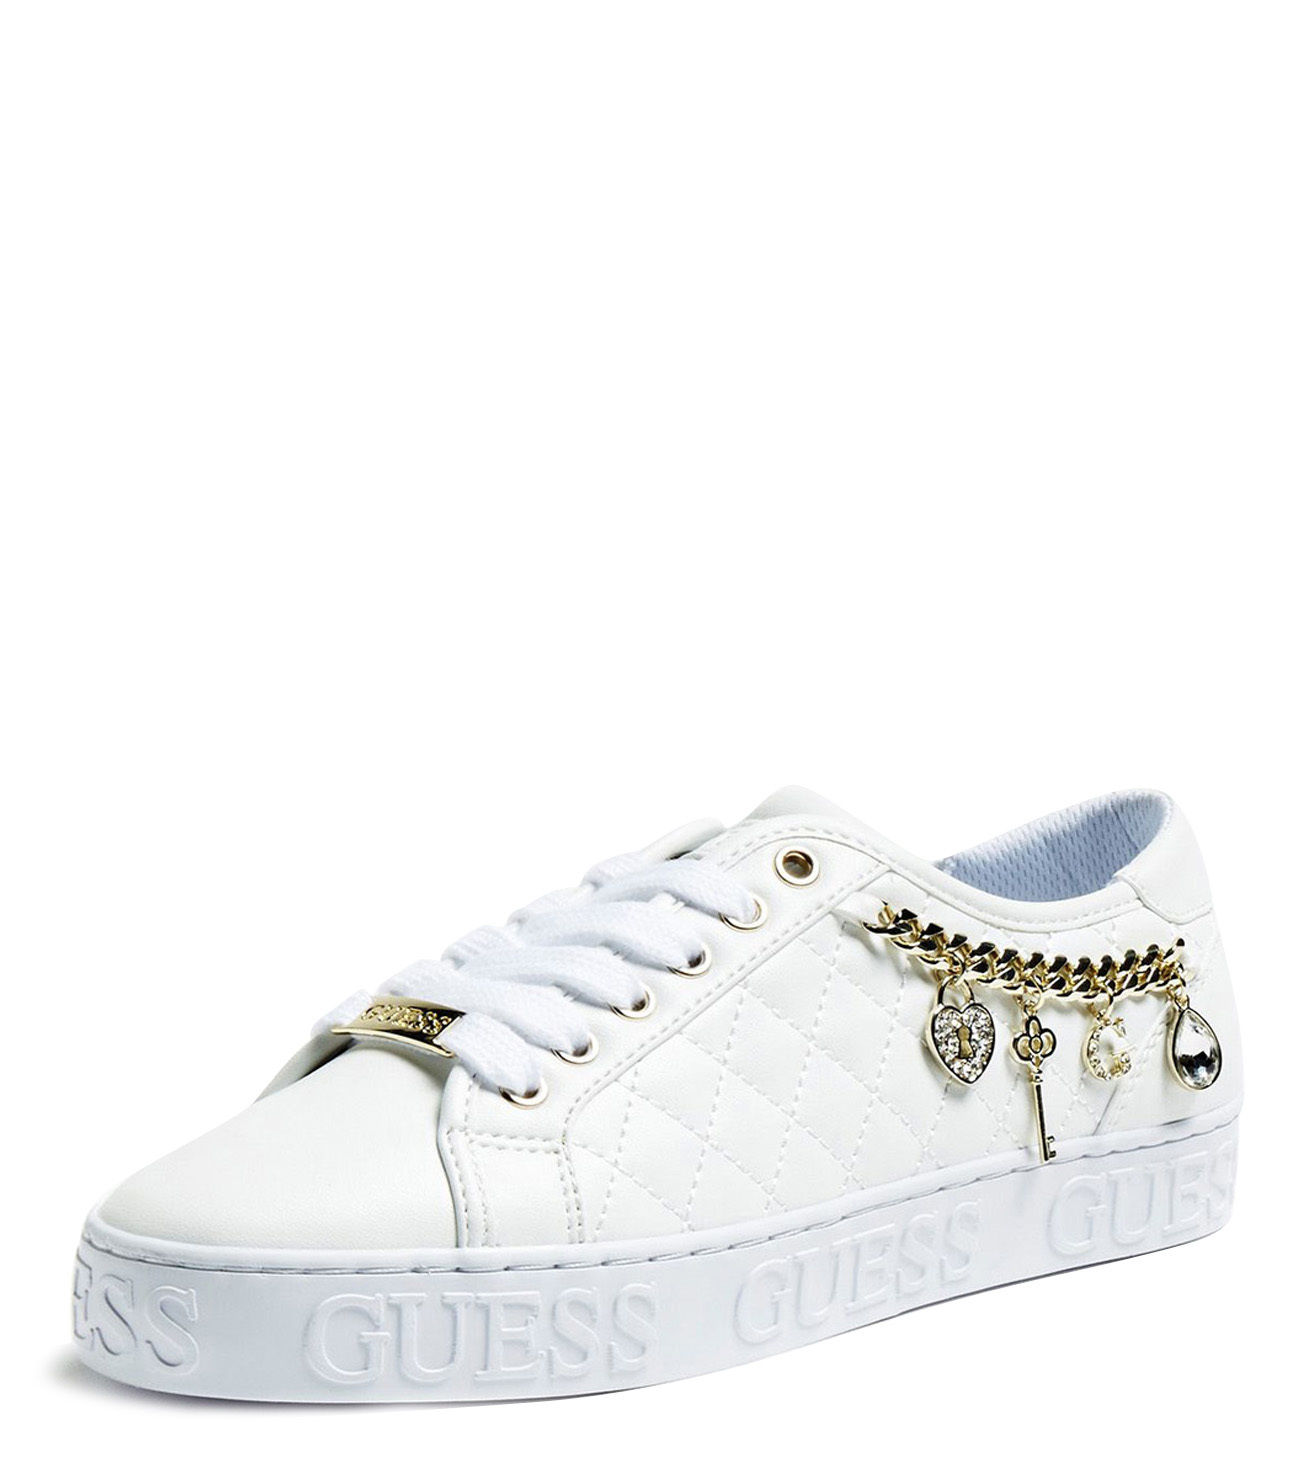 Graselin2 Quilted Women Sneakers